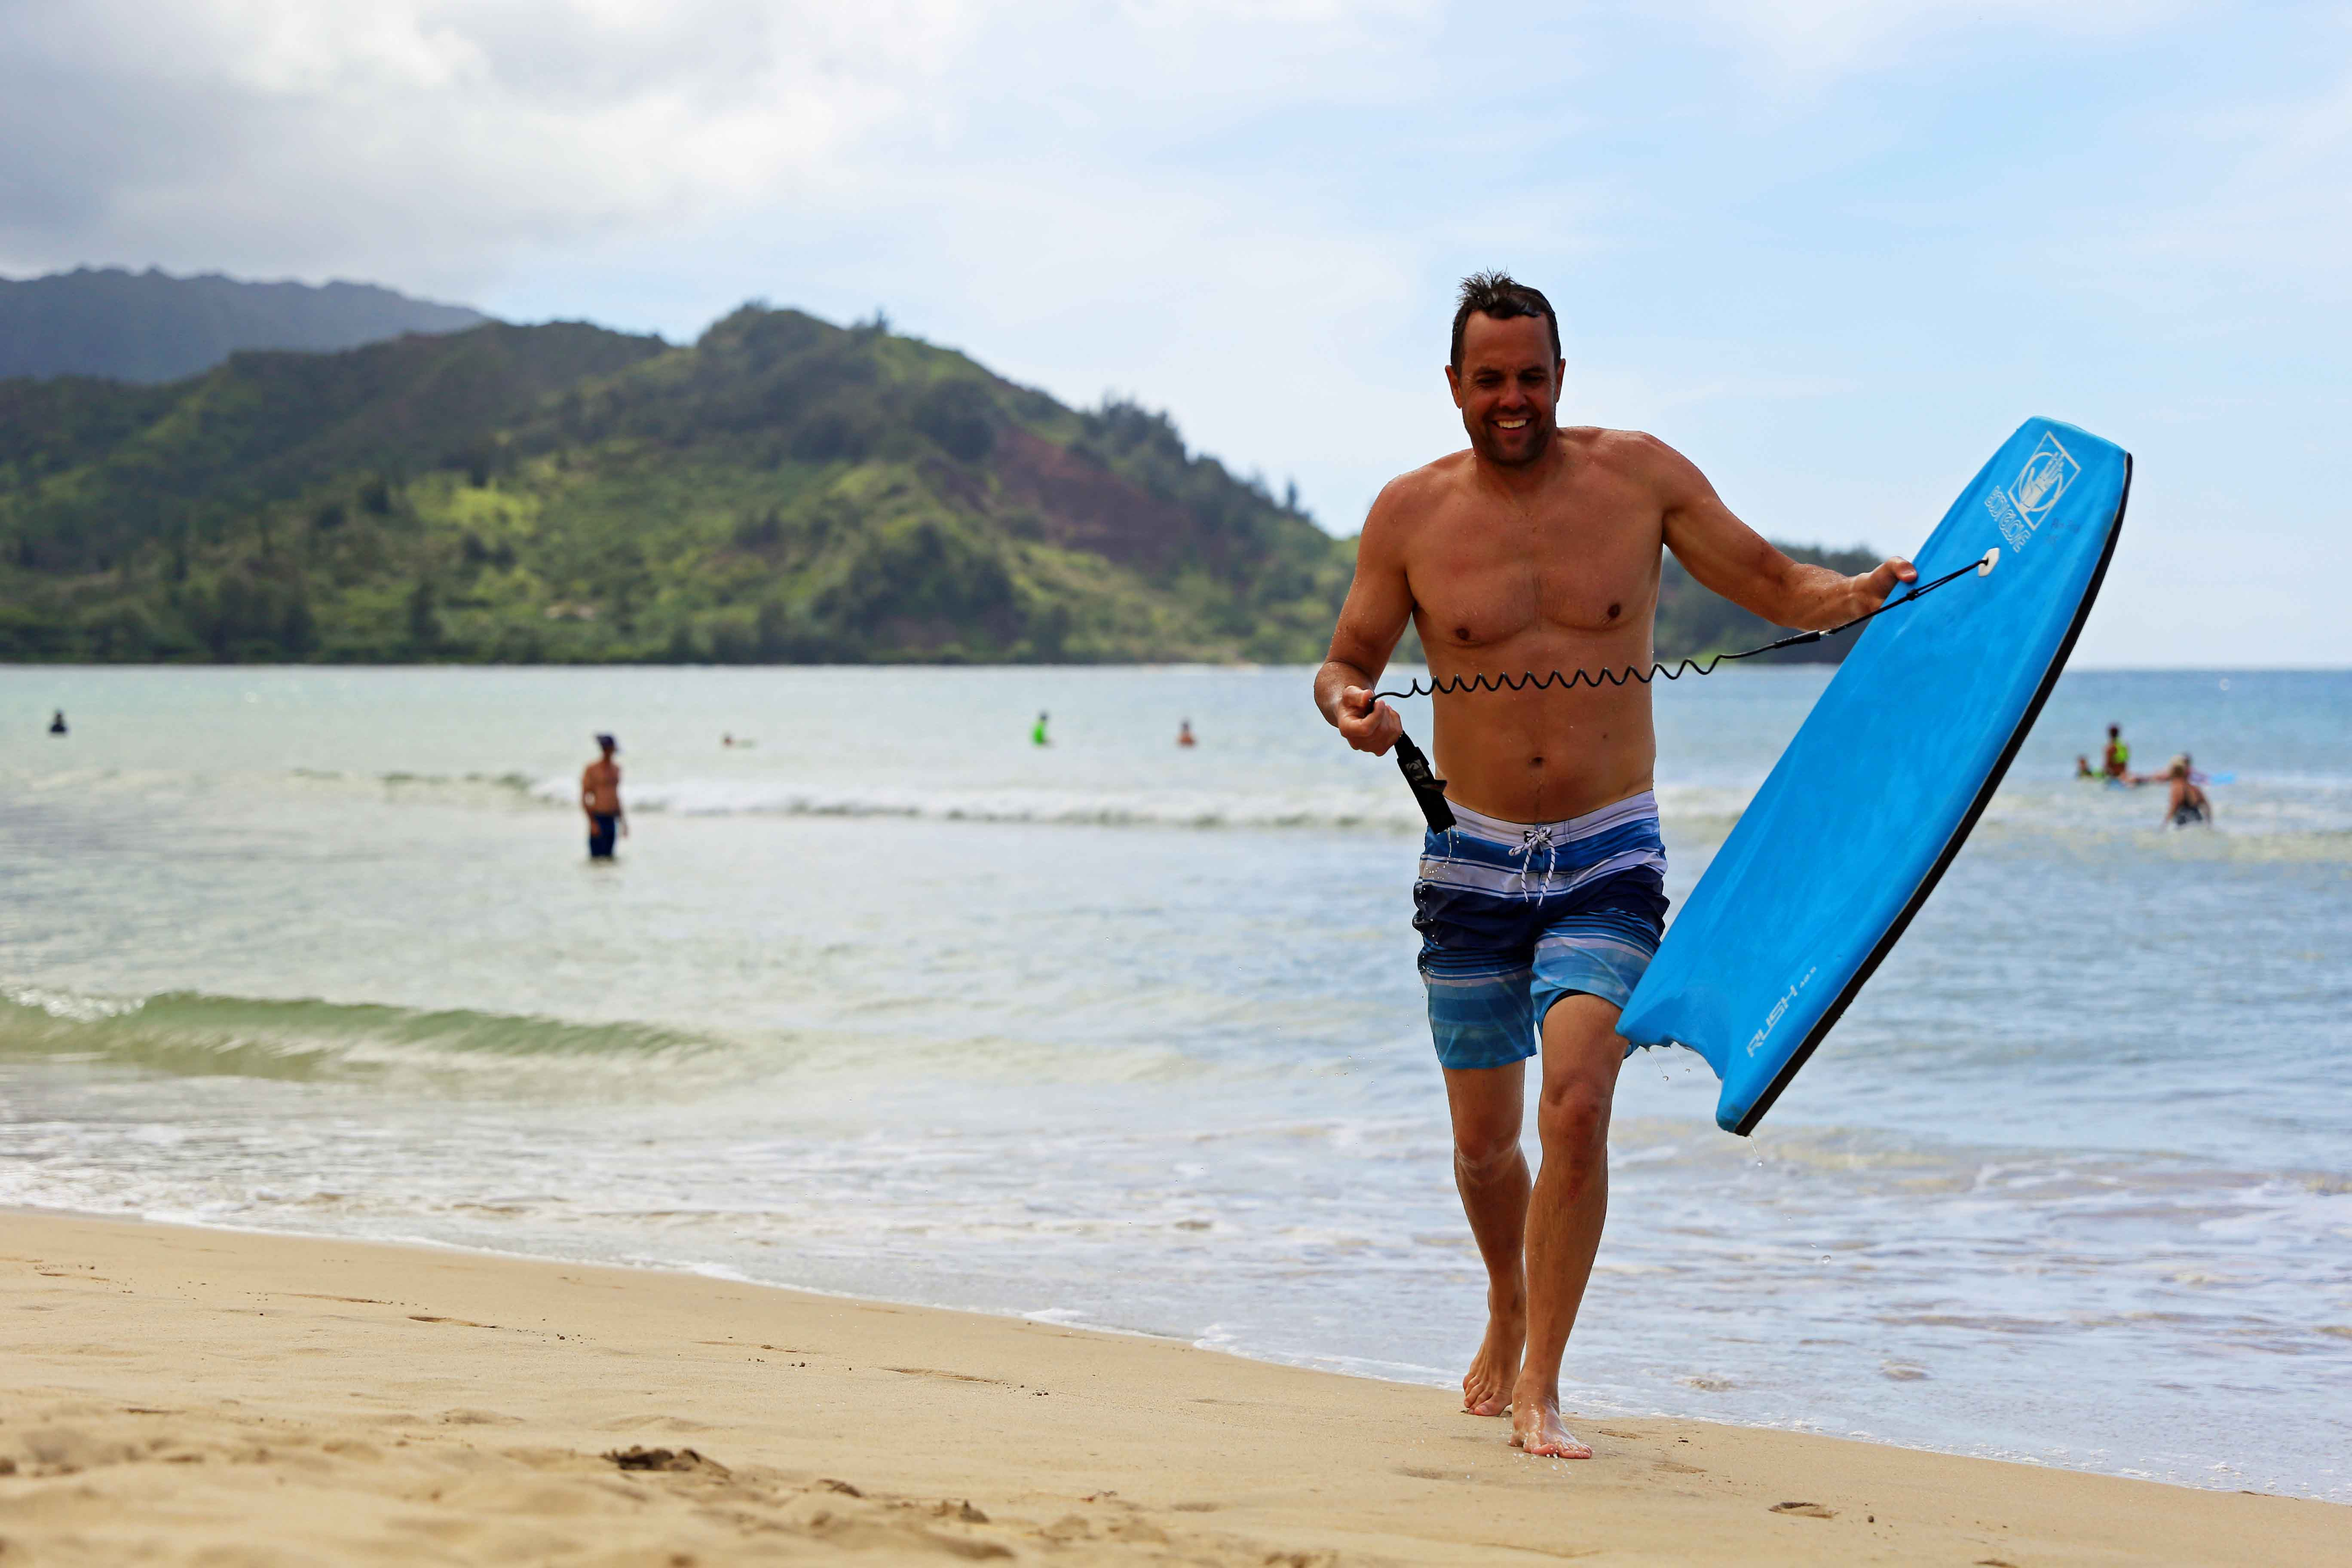 Kauai Hawaii Travel Guide. Boogie Boarding at Hanalei Bay